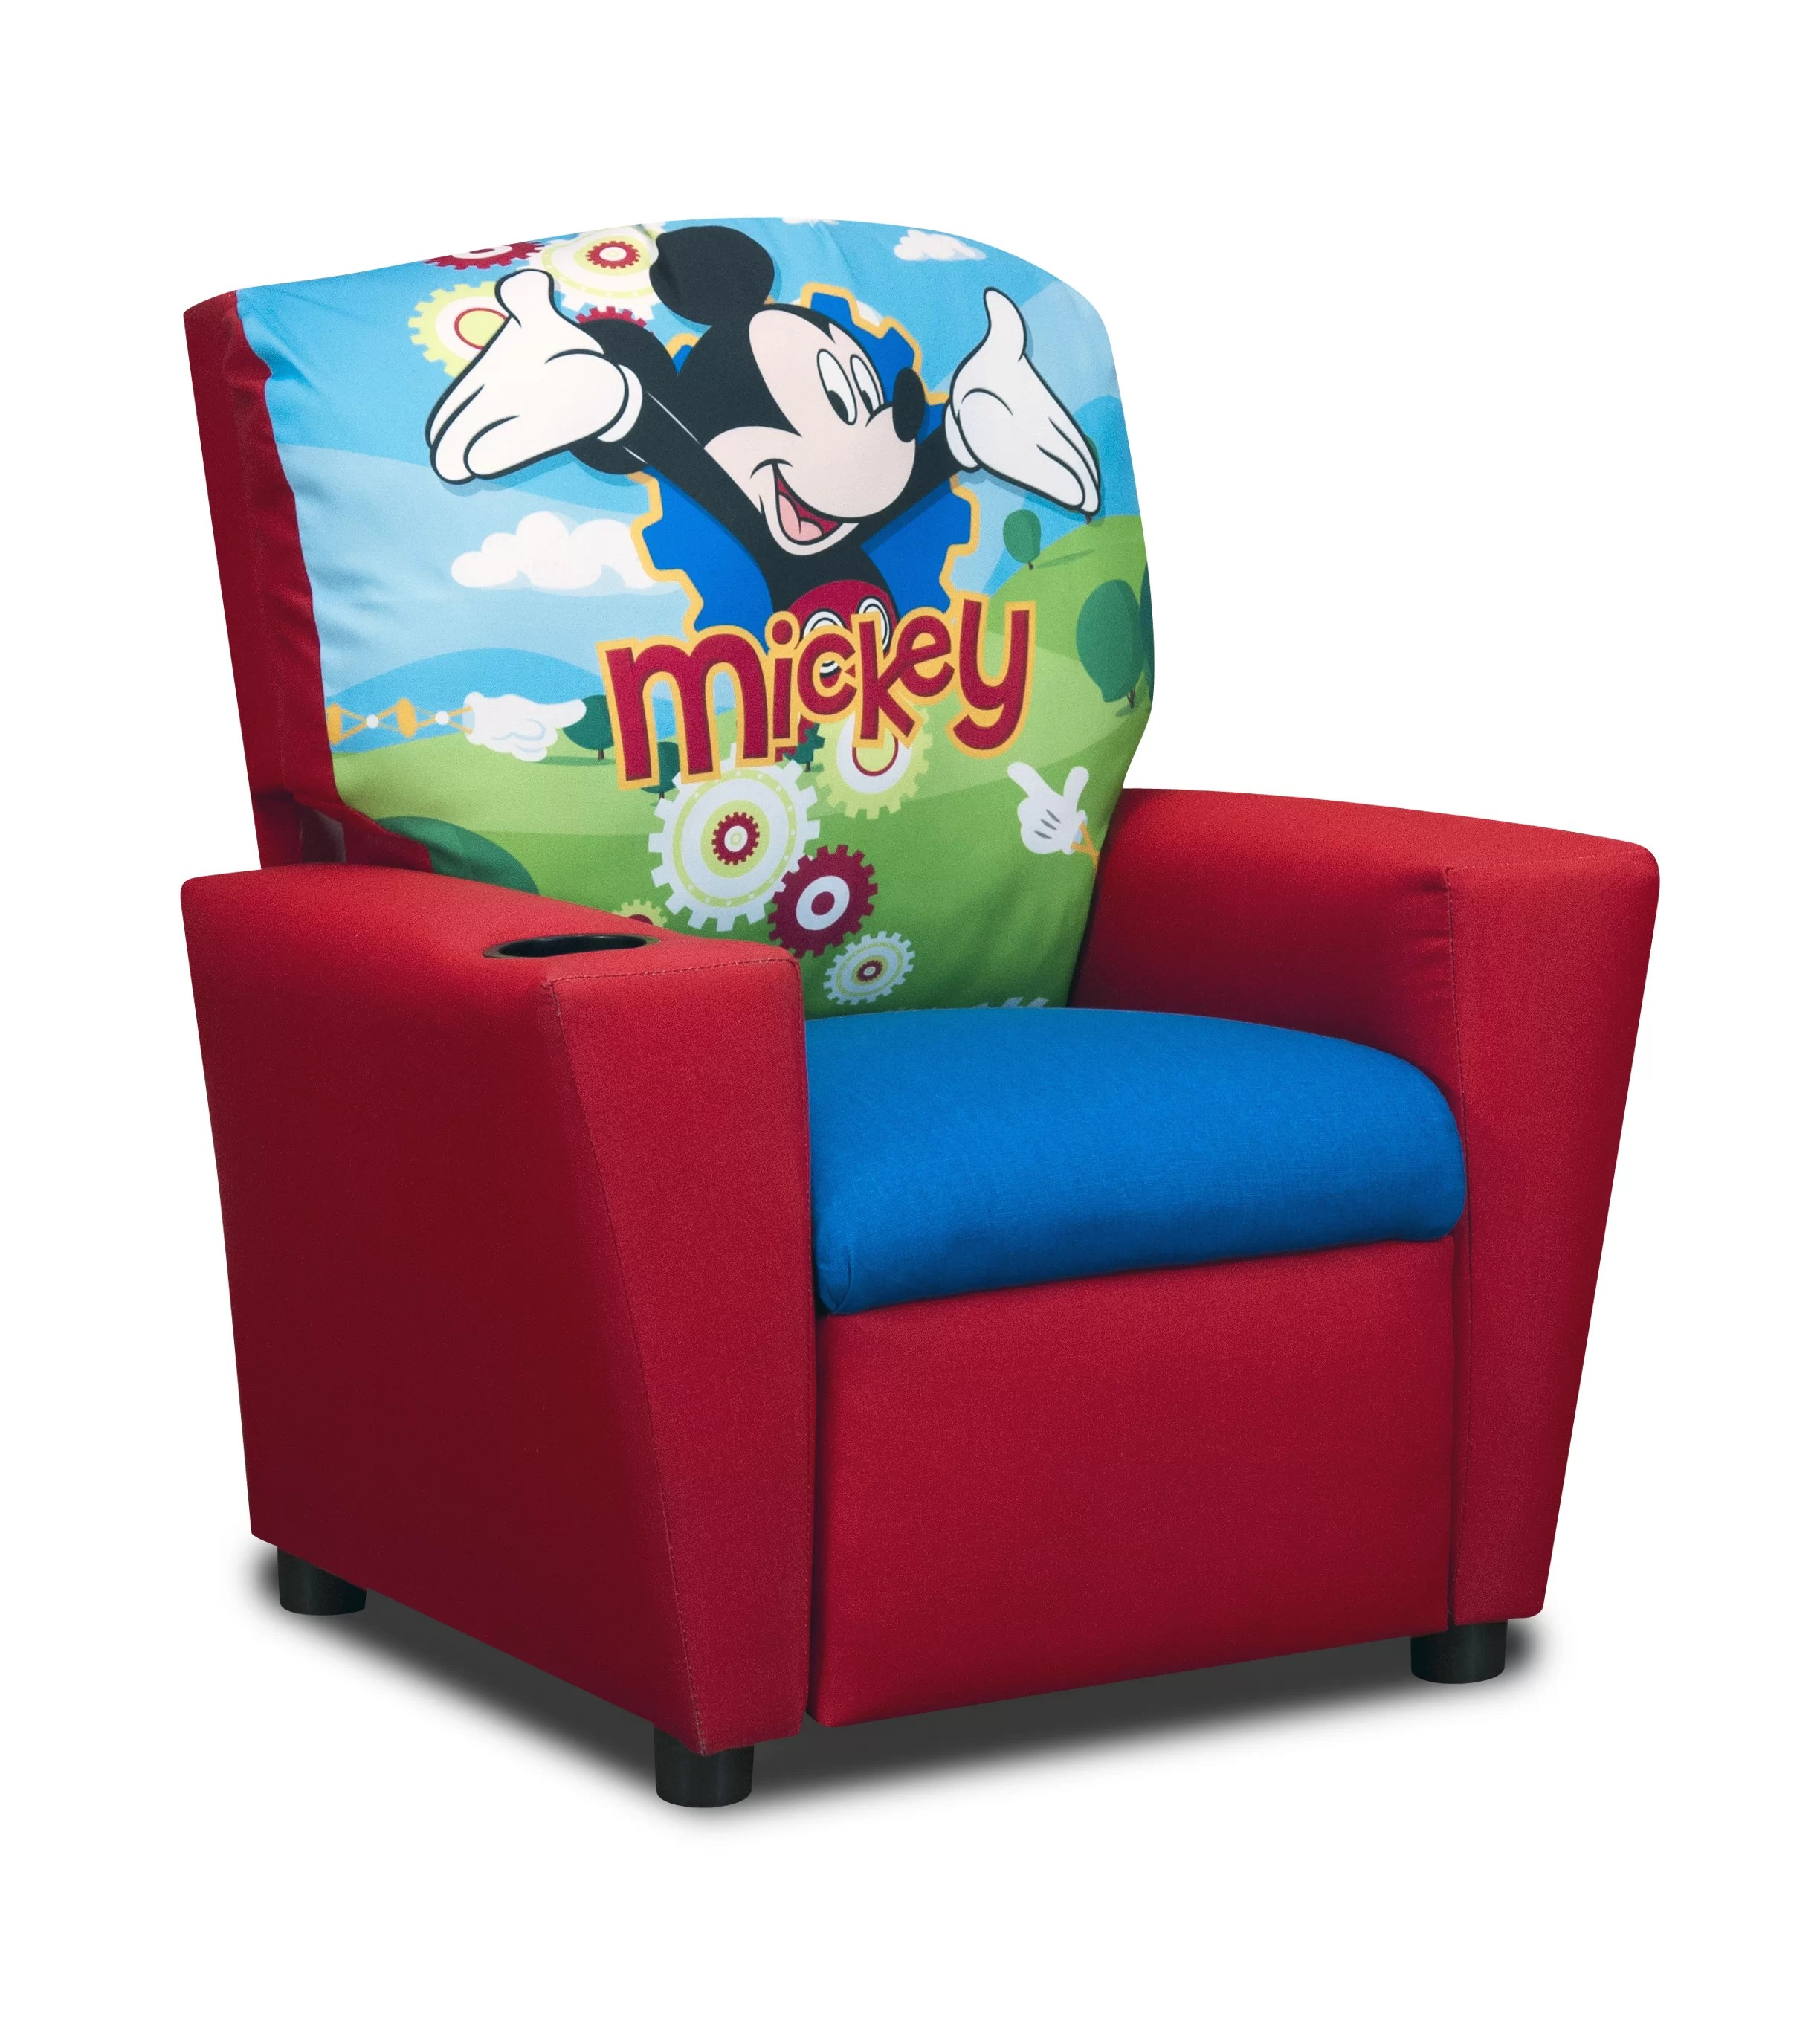 Mickey Mouse Chairs For Toddlers Disney S Mickey Mouse Clubhouse Kids Cotton Recliner Chair With Cup Holder